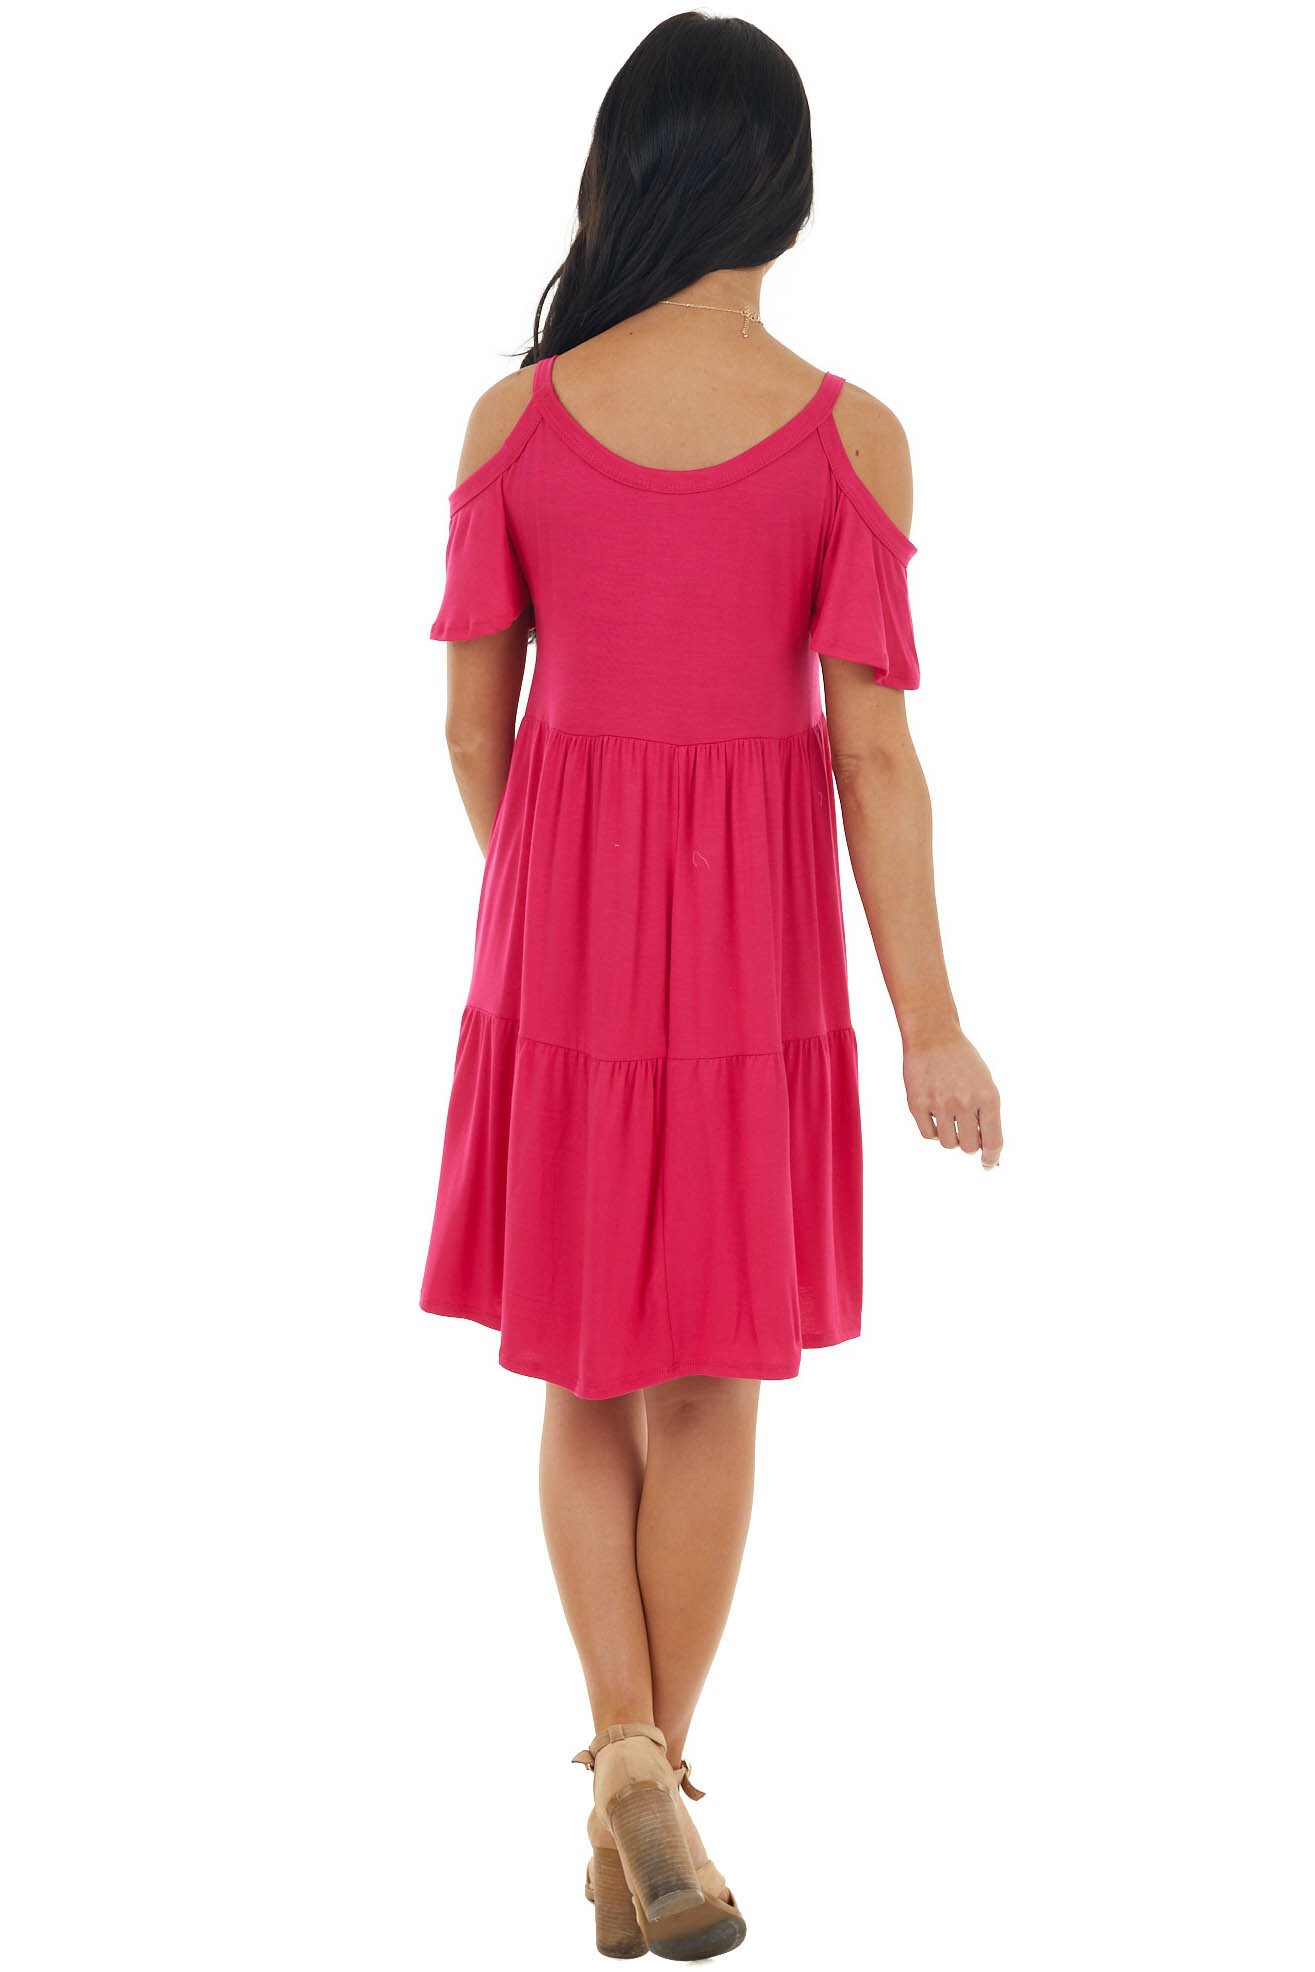 Magenta Babydoll Tiered Knit Short Dress with Cold Shoulders